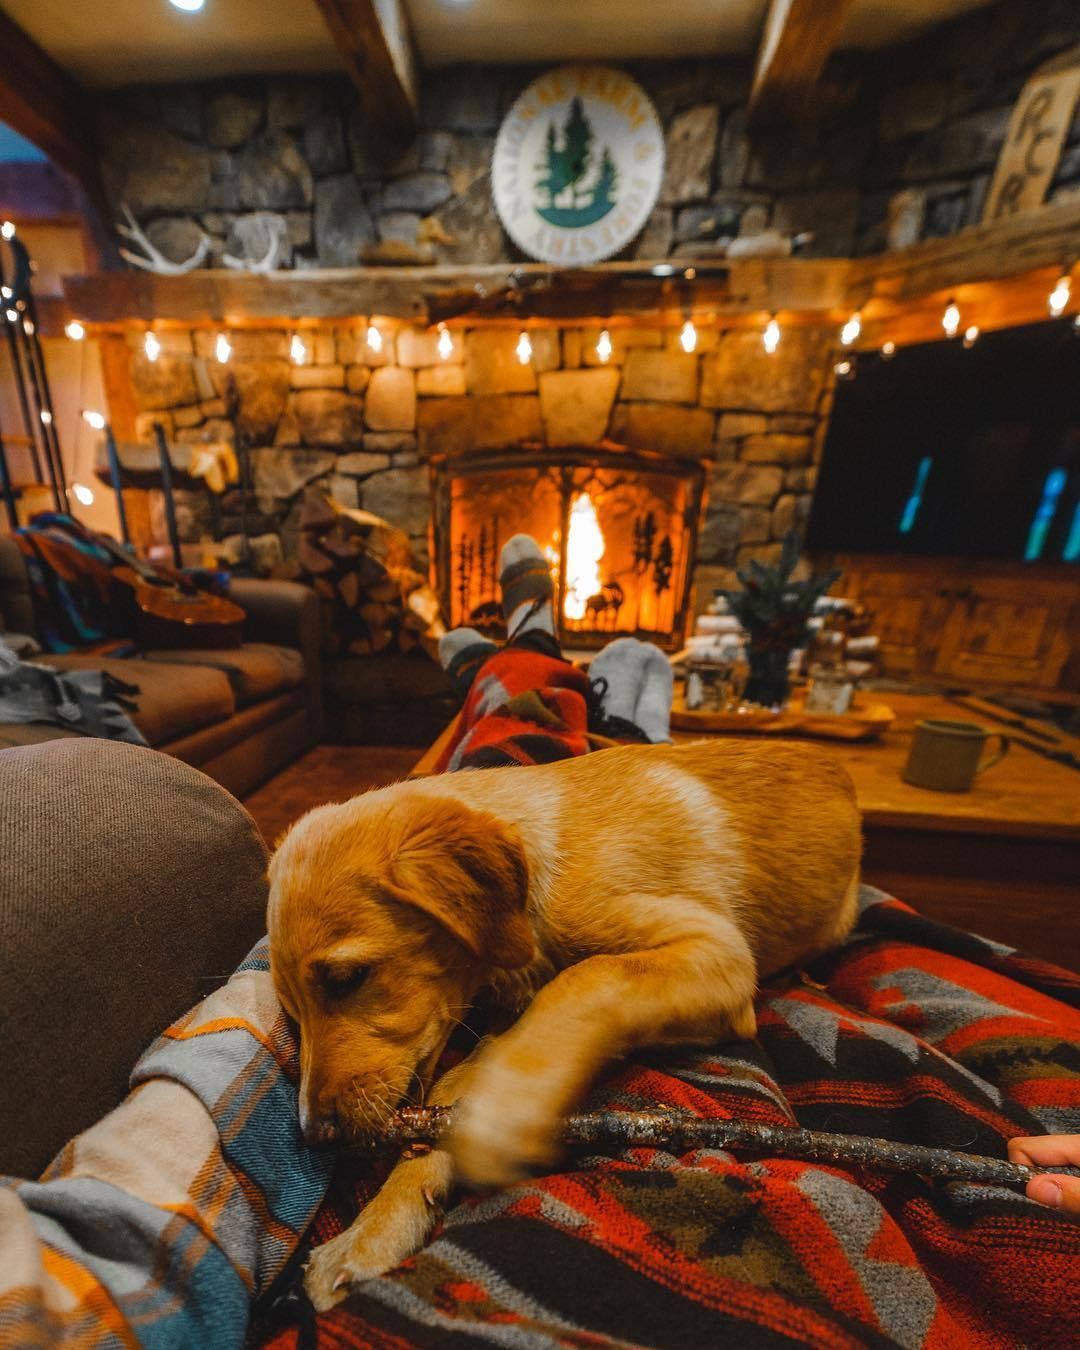 puppy playing with stick inside of cabin with fireplace